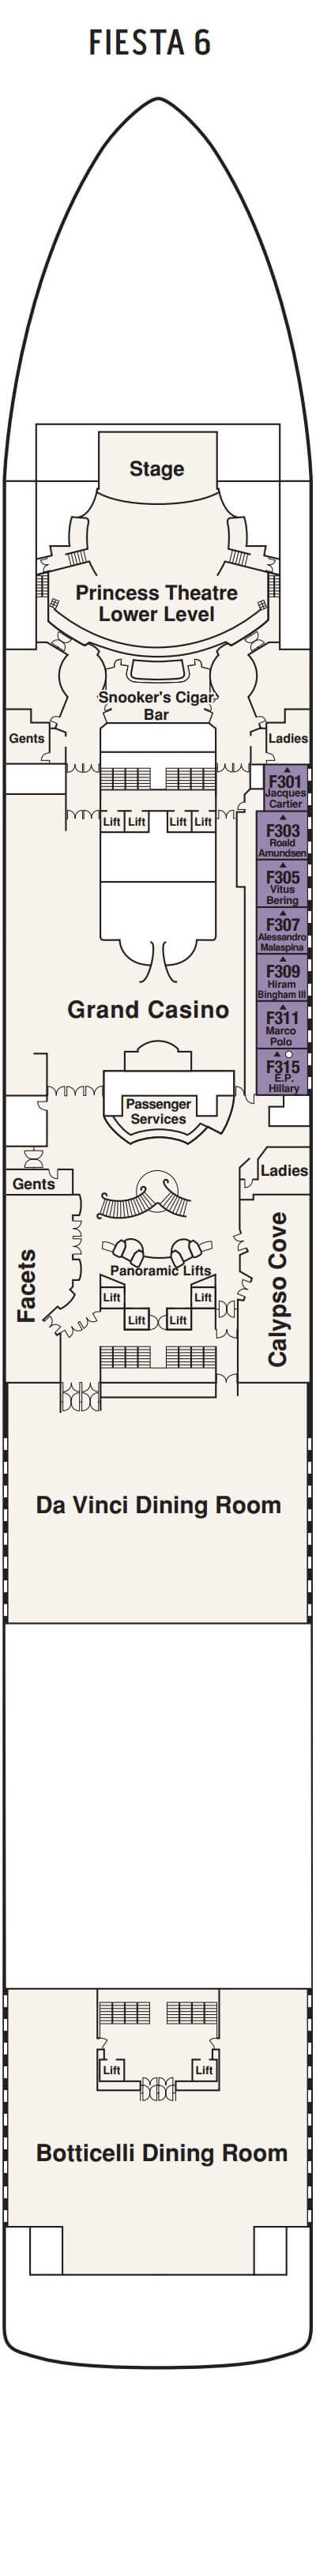 Grand Princess Fiesta Deck 6 layout